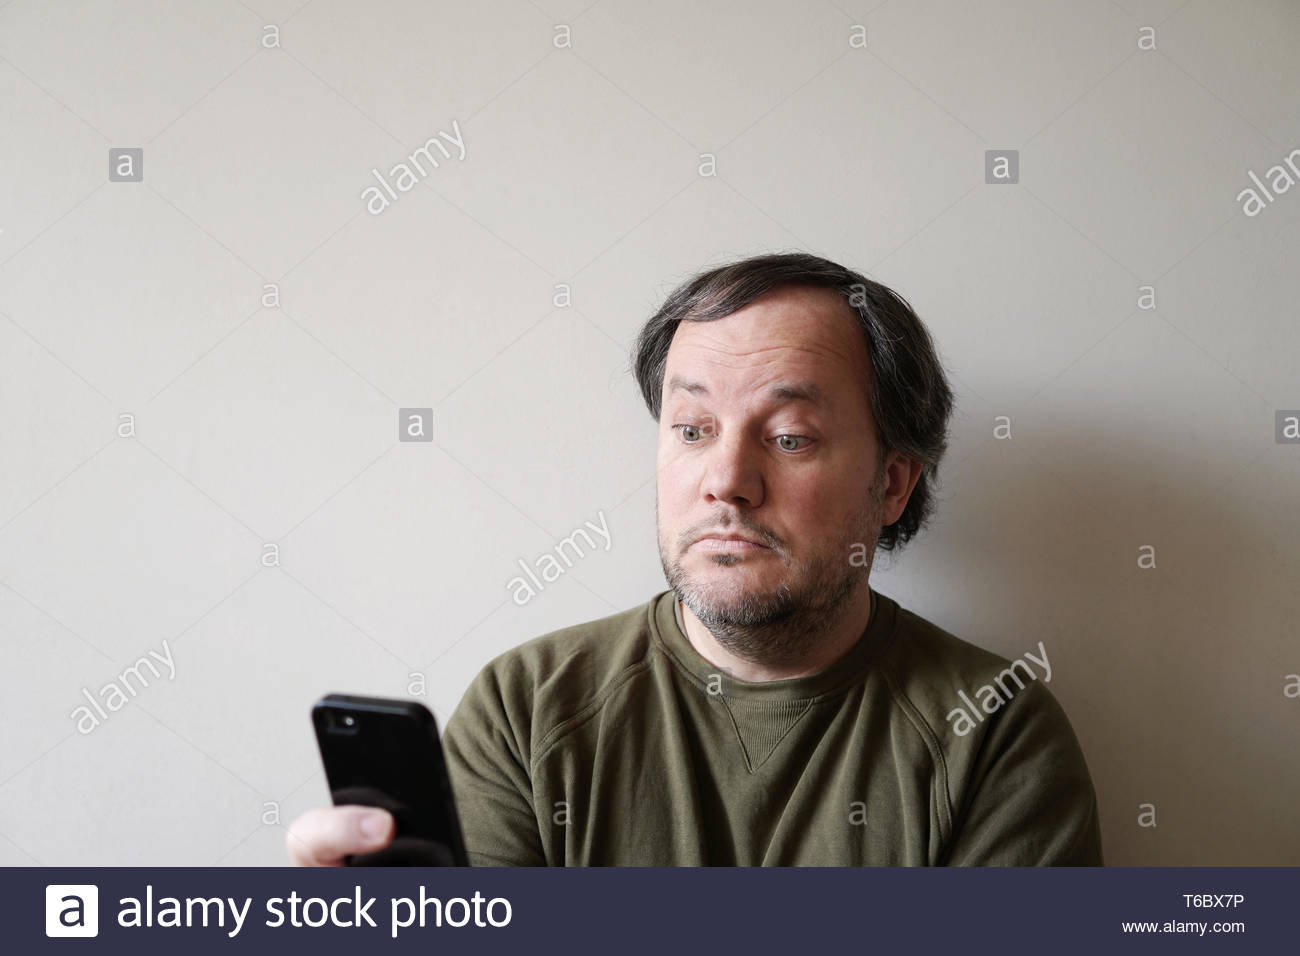 wide-eyed man looking at smartphone - Stock Image